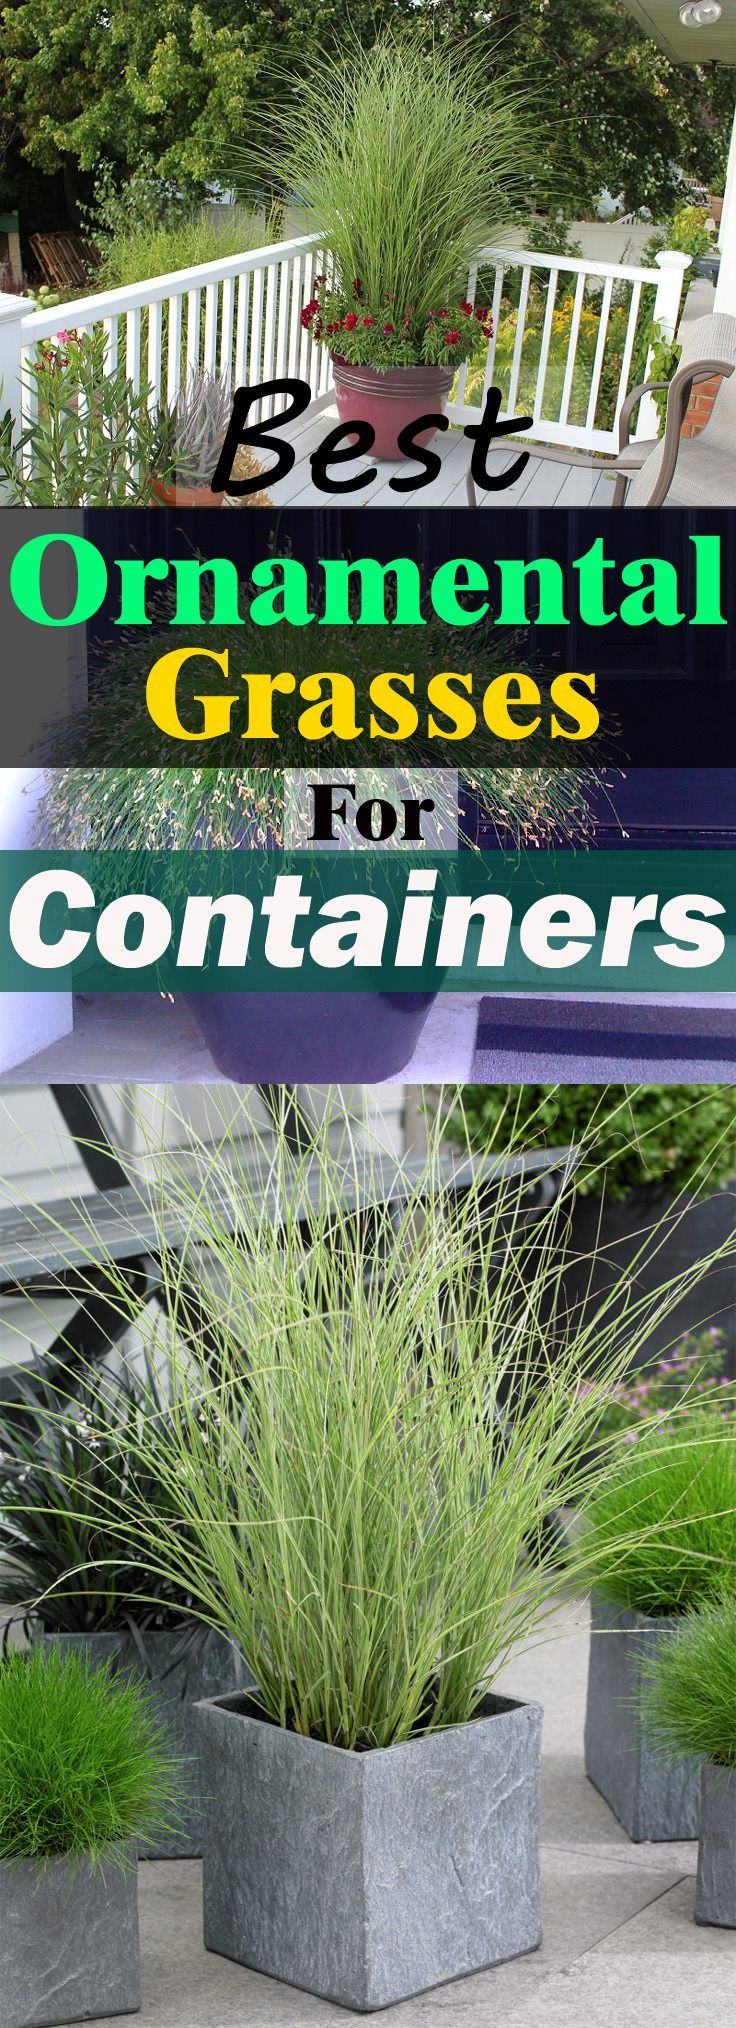 25 best ideas about ornamental grasses on pinterest for Ornamental grass in containers for privacy